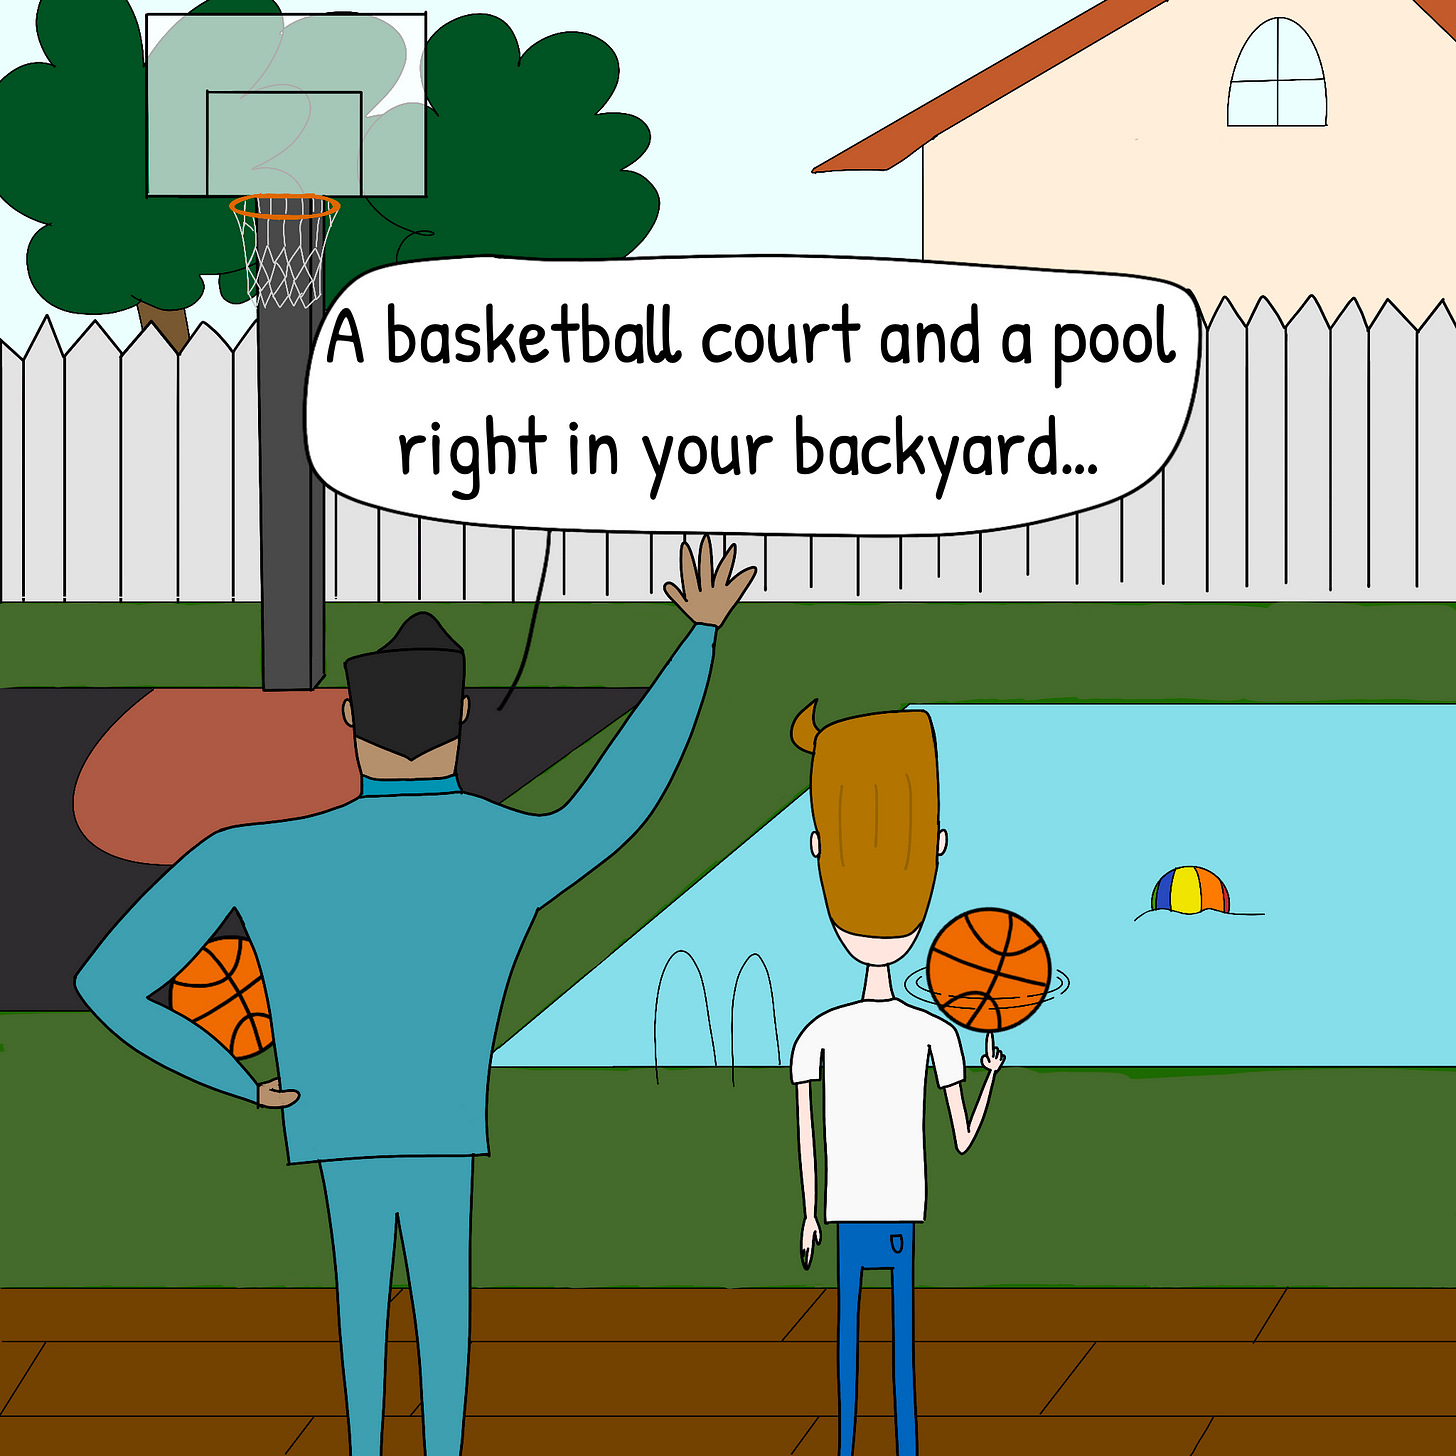 """Panel 3: The realtor shows Vic the backyard and continues by saying """"A basketball court and a pool right in your backyard..."""""""